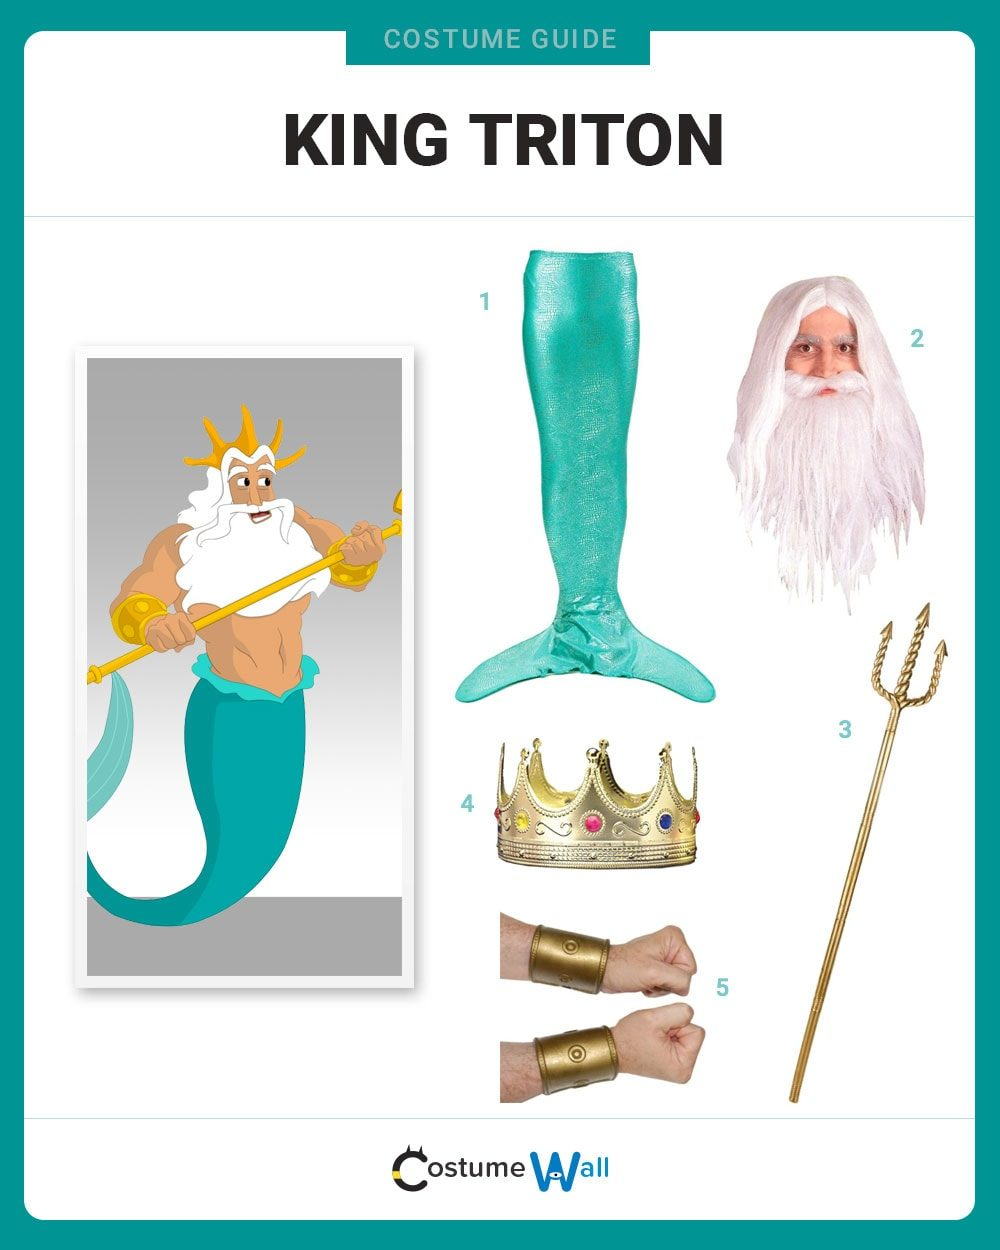 King Triton Costume Guide